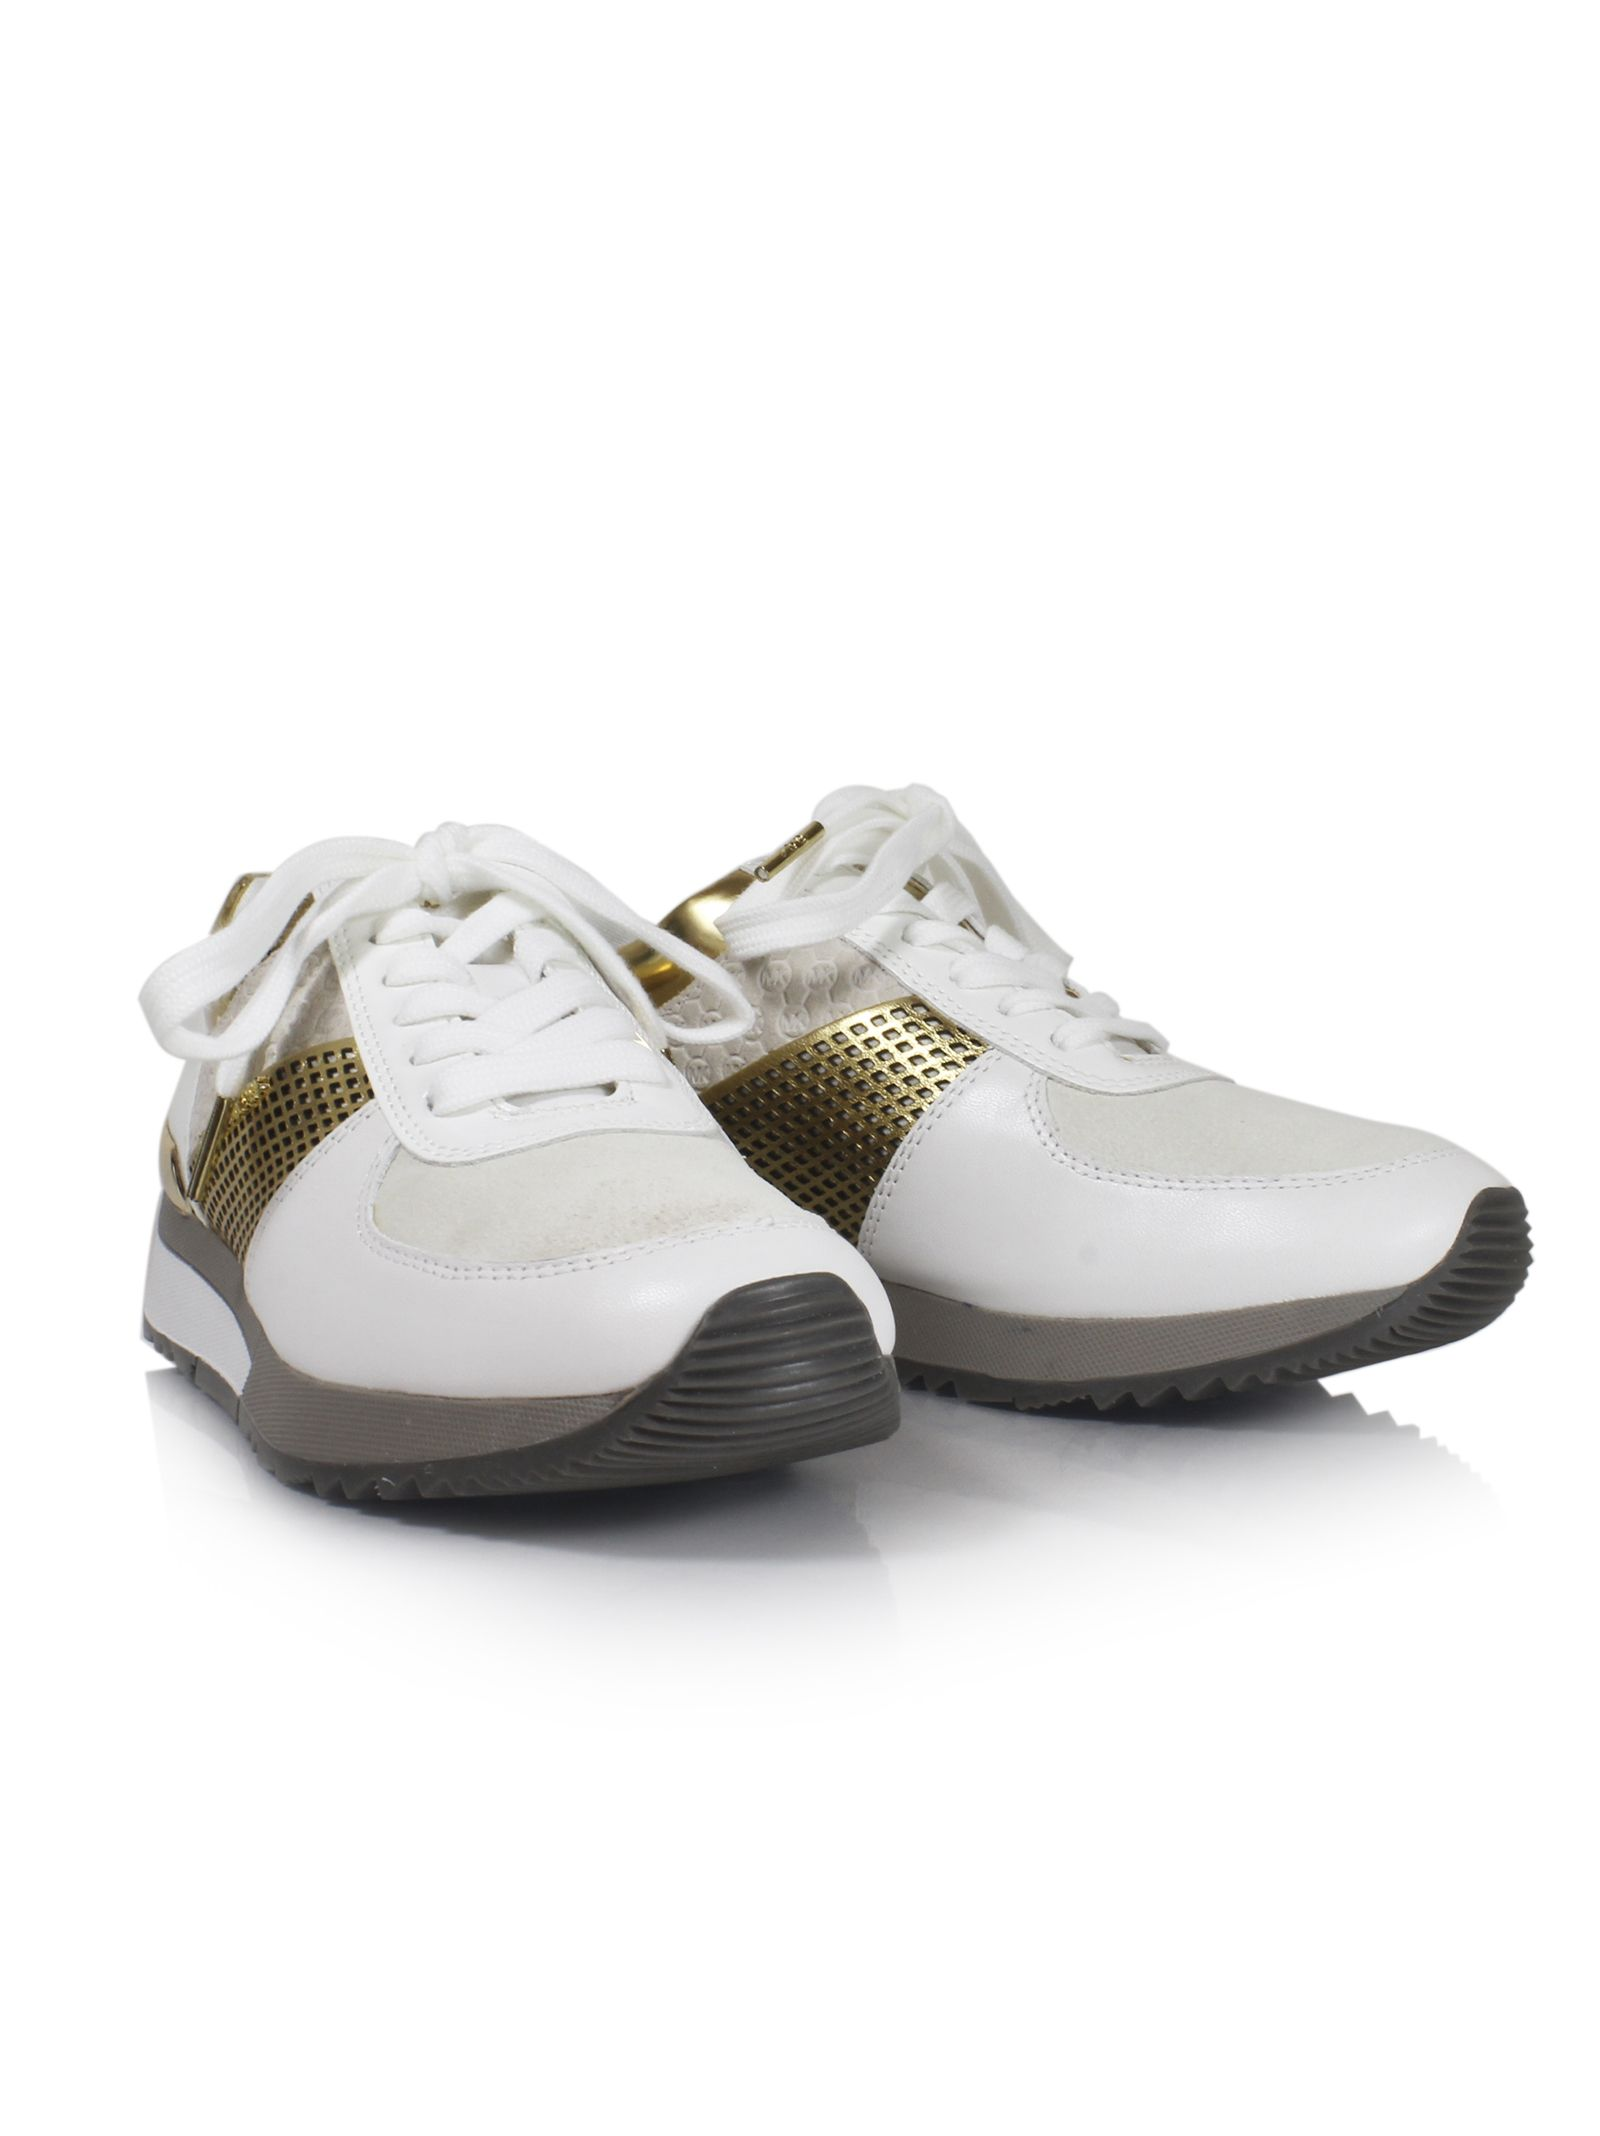 michael kors female 220183 optic white allie low sneakers